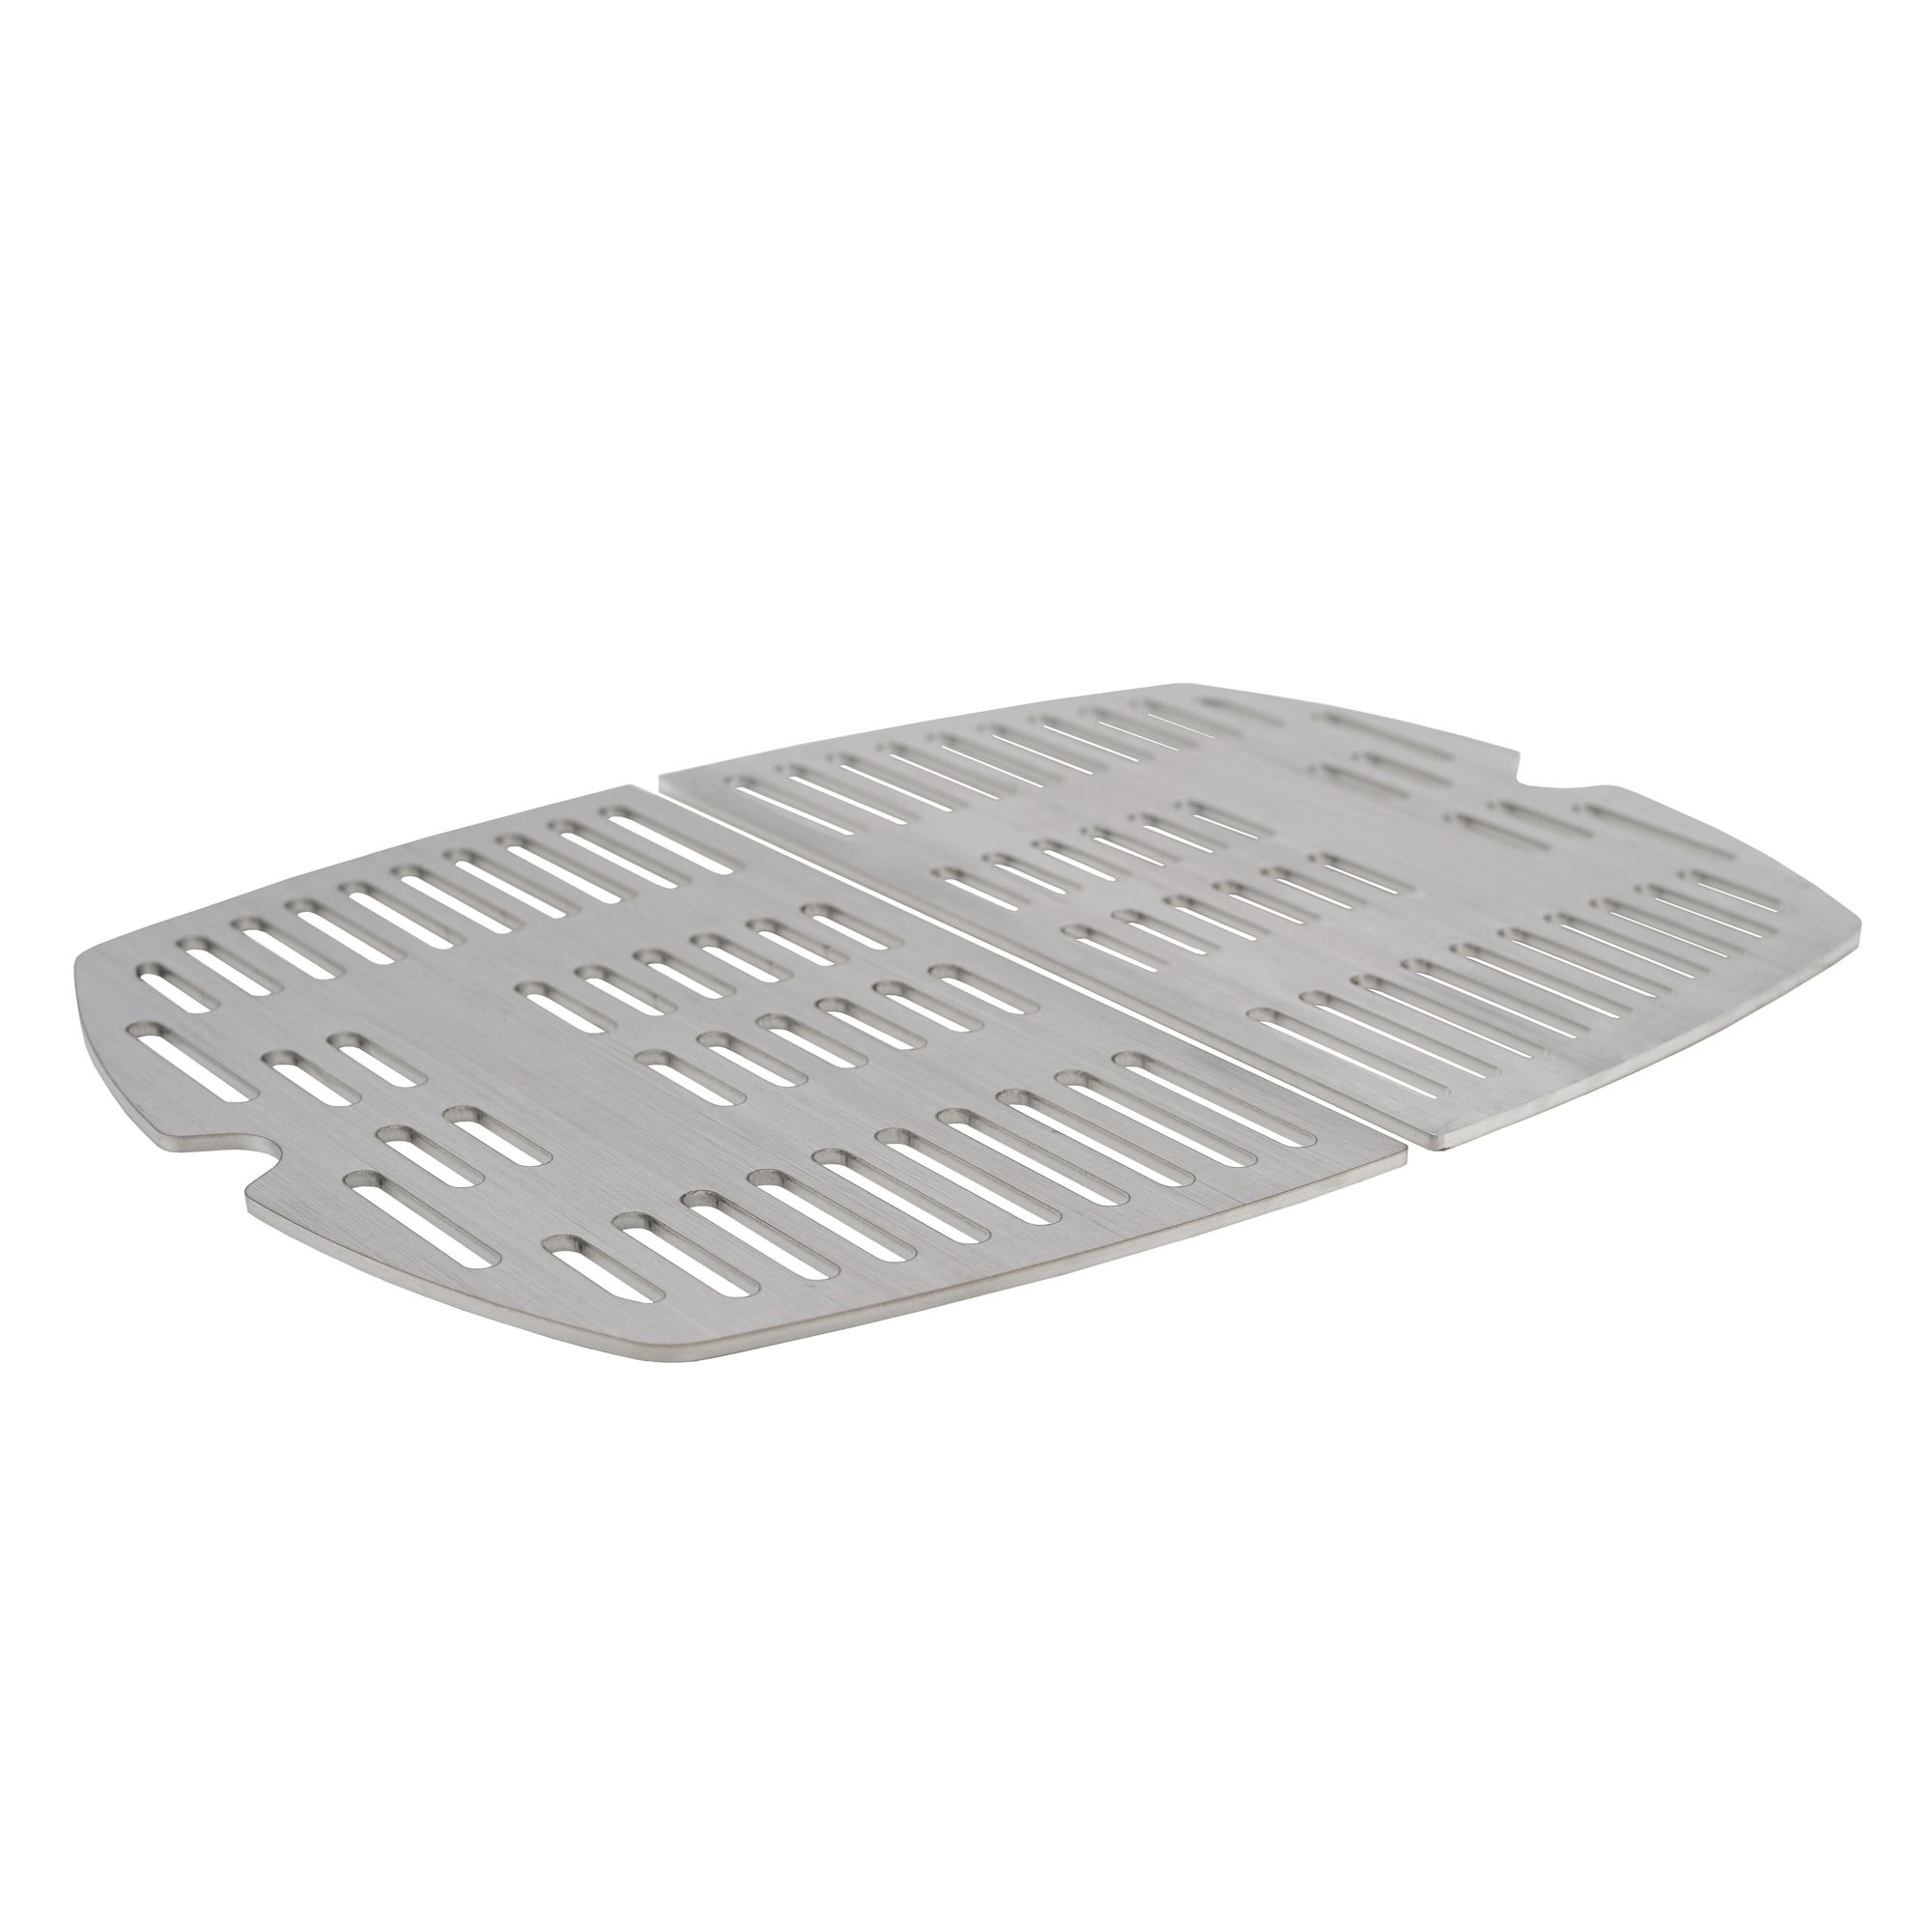 BBQ-Toro stainless steel grill grate, suitable for Weber Q3000